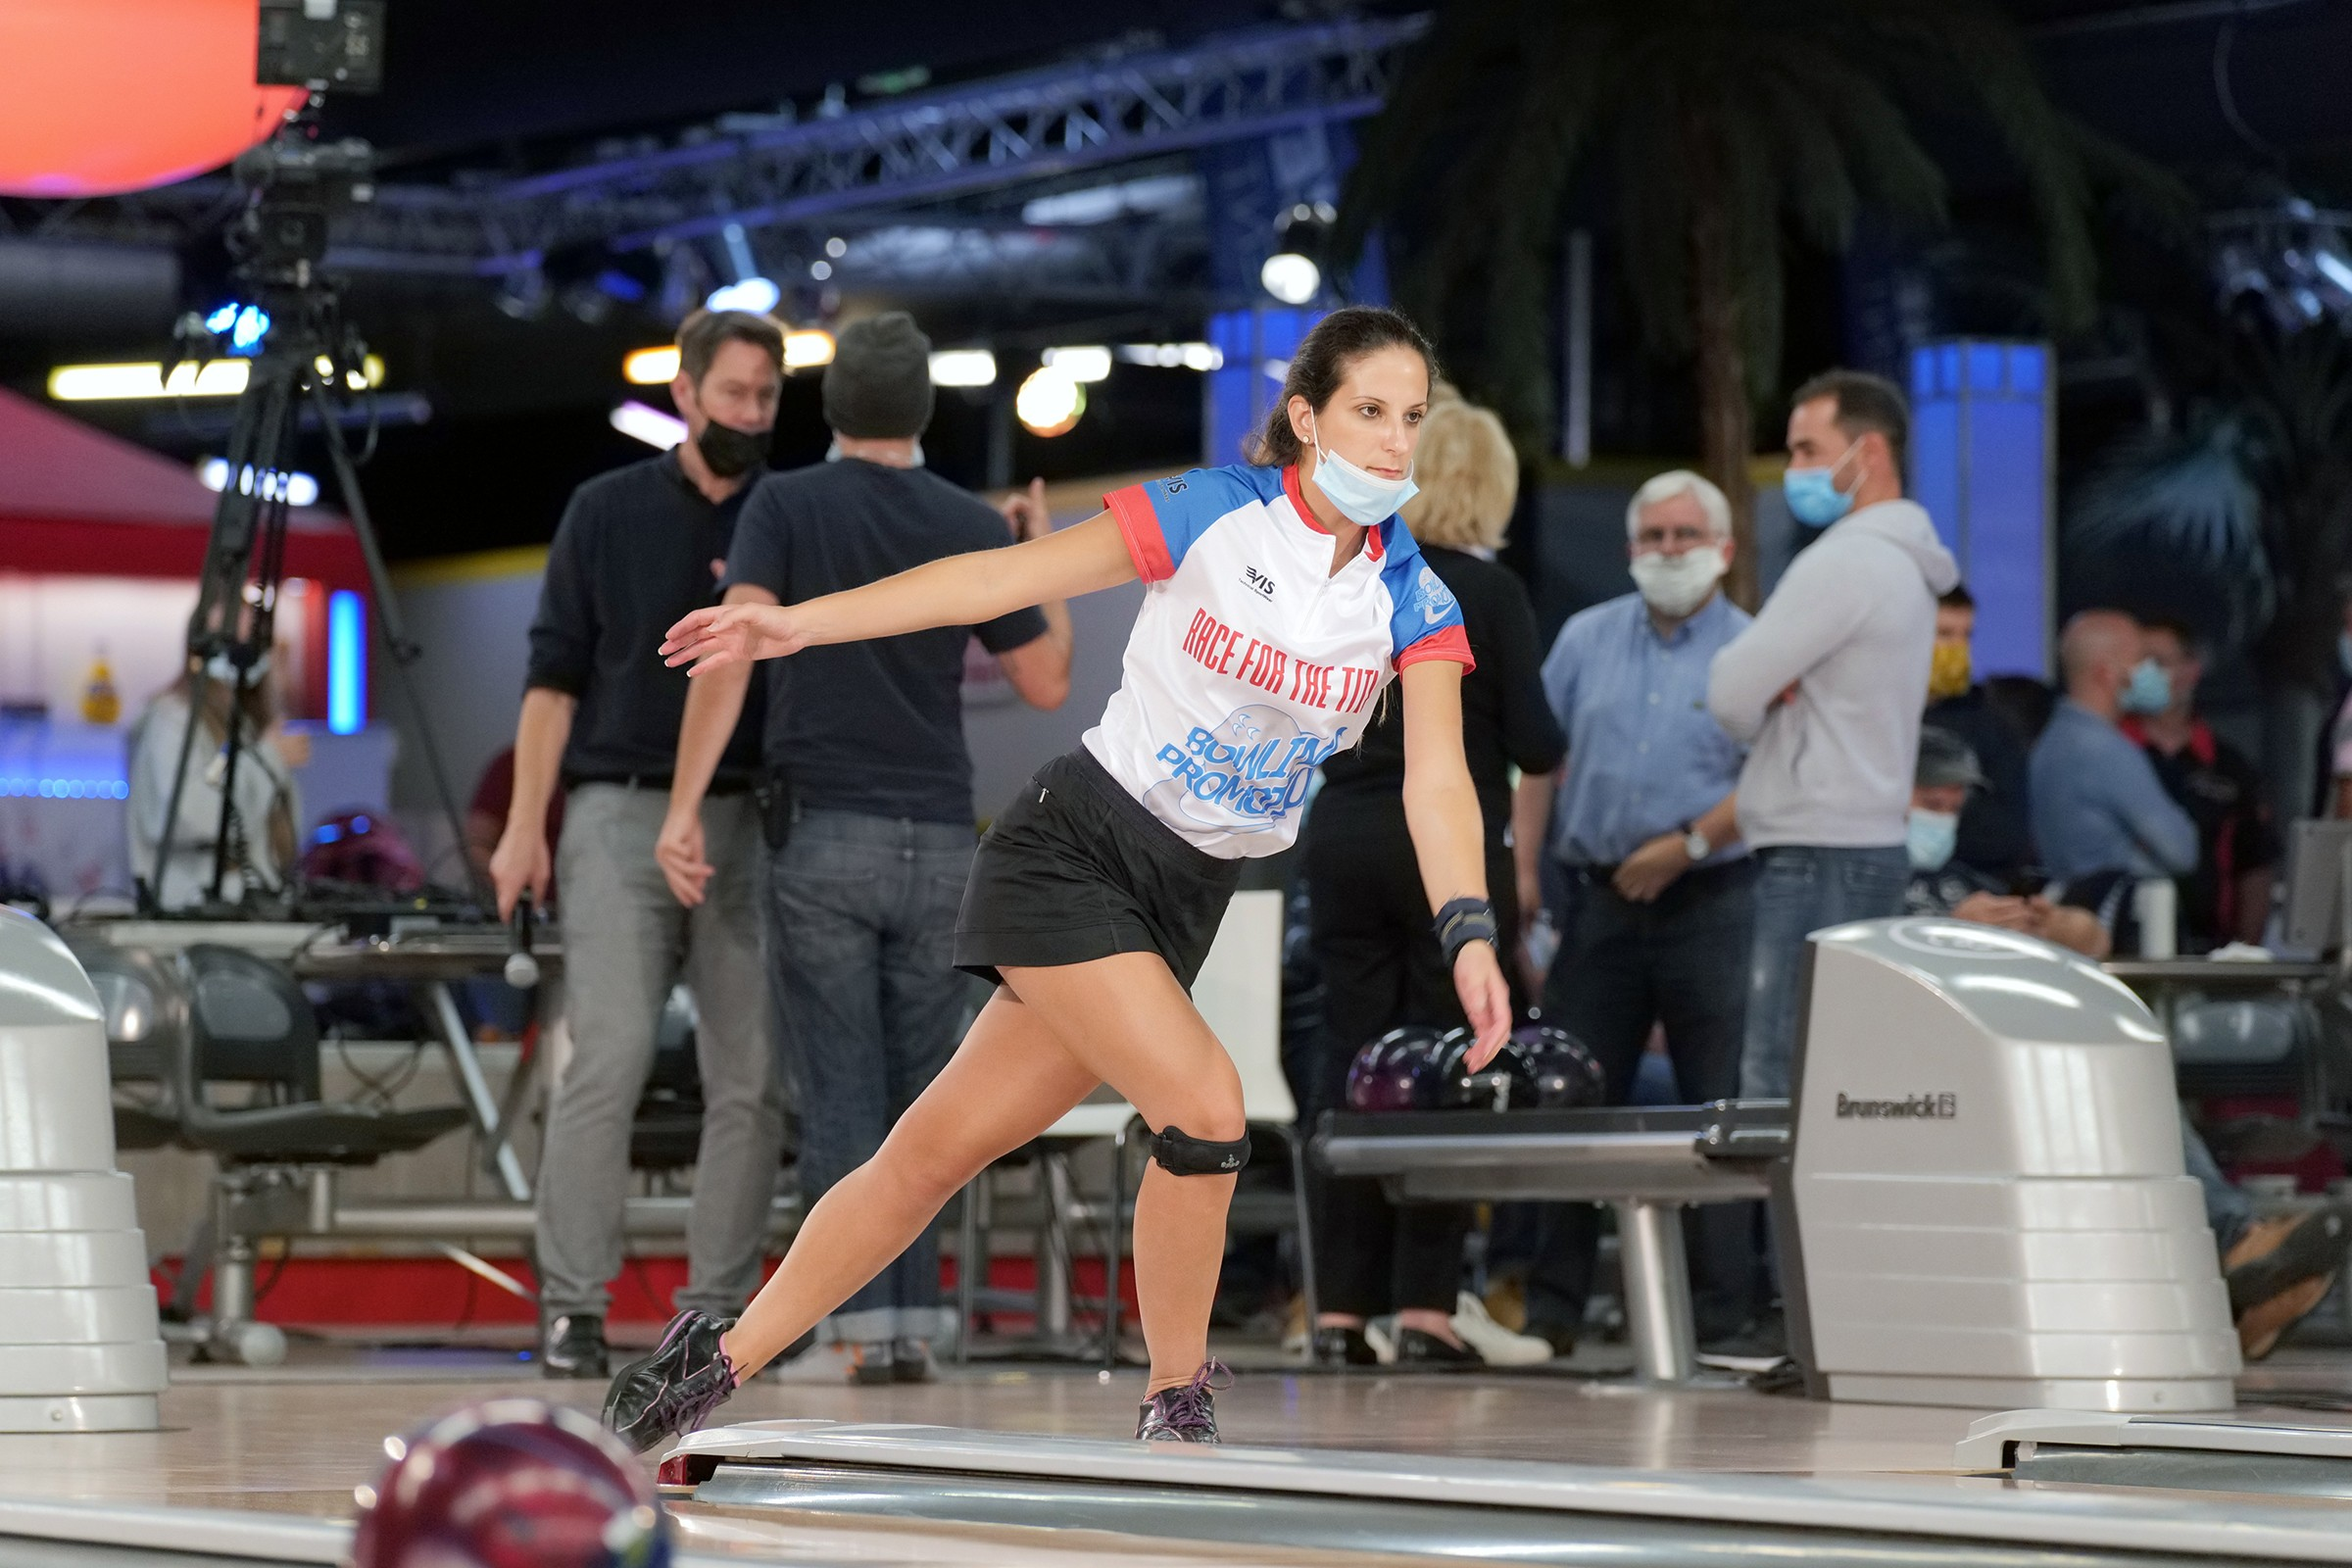 Bowling promotion tour 2020 saint lo photos ruel alain 117